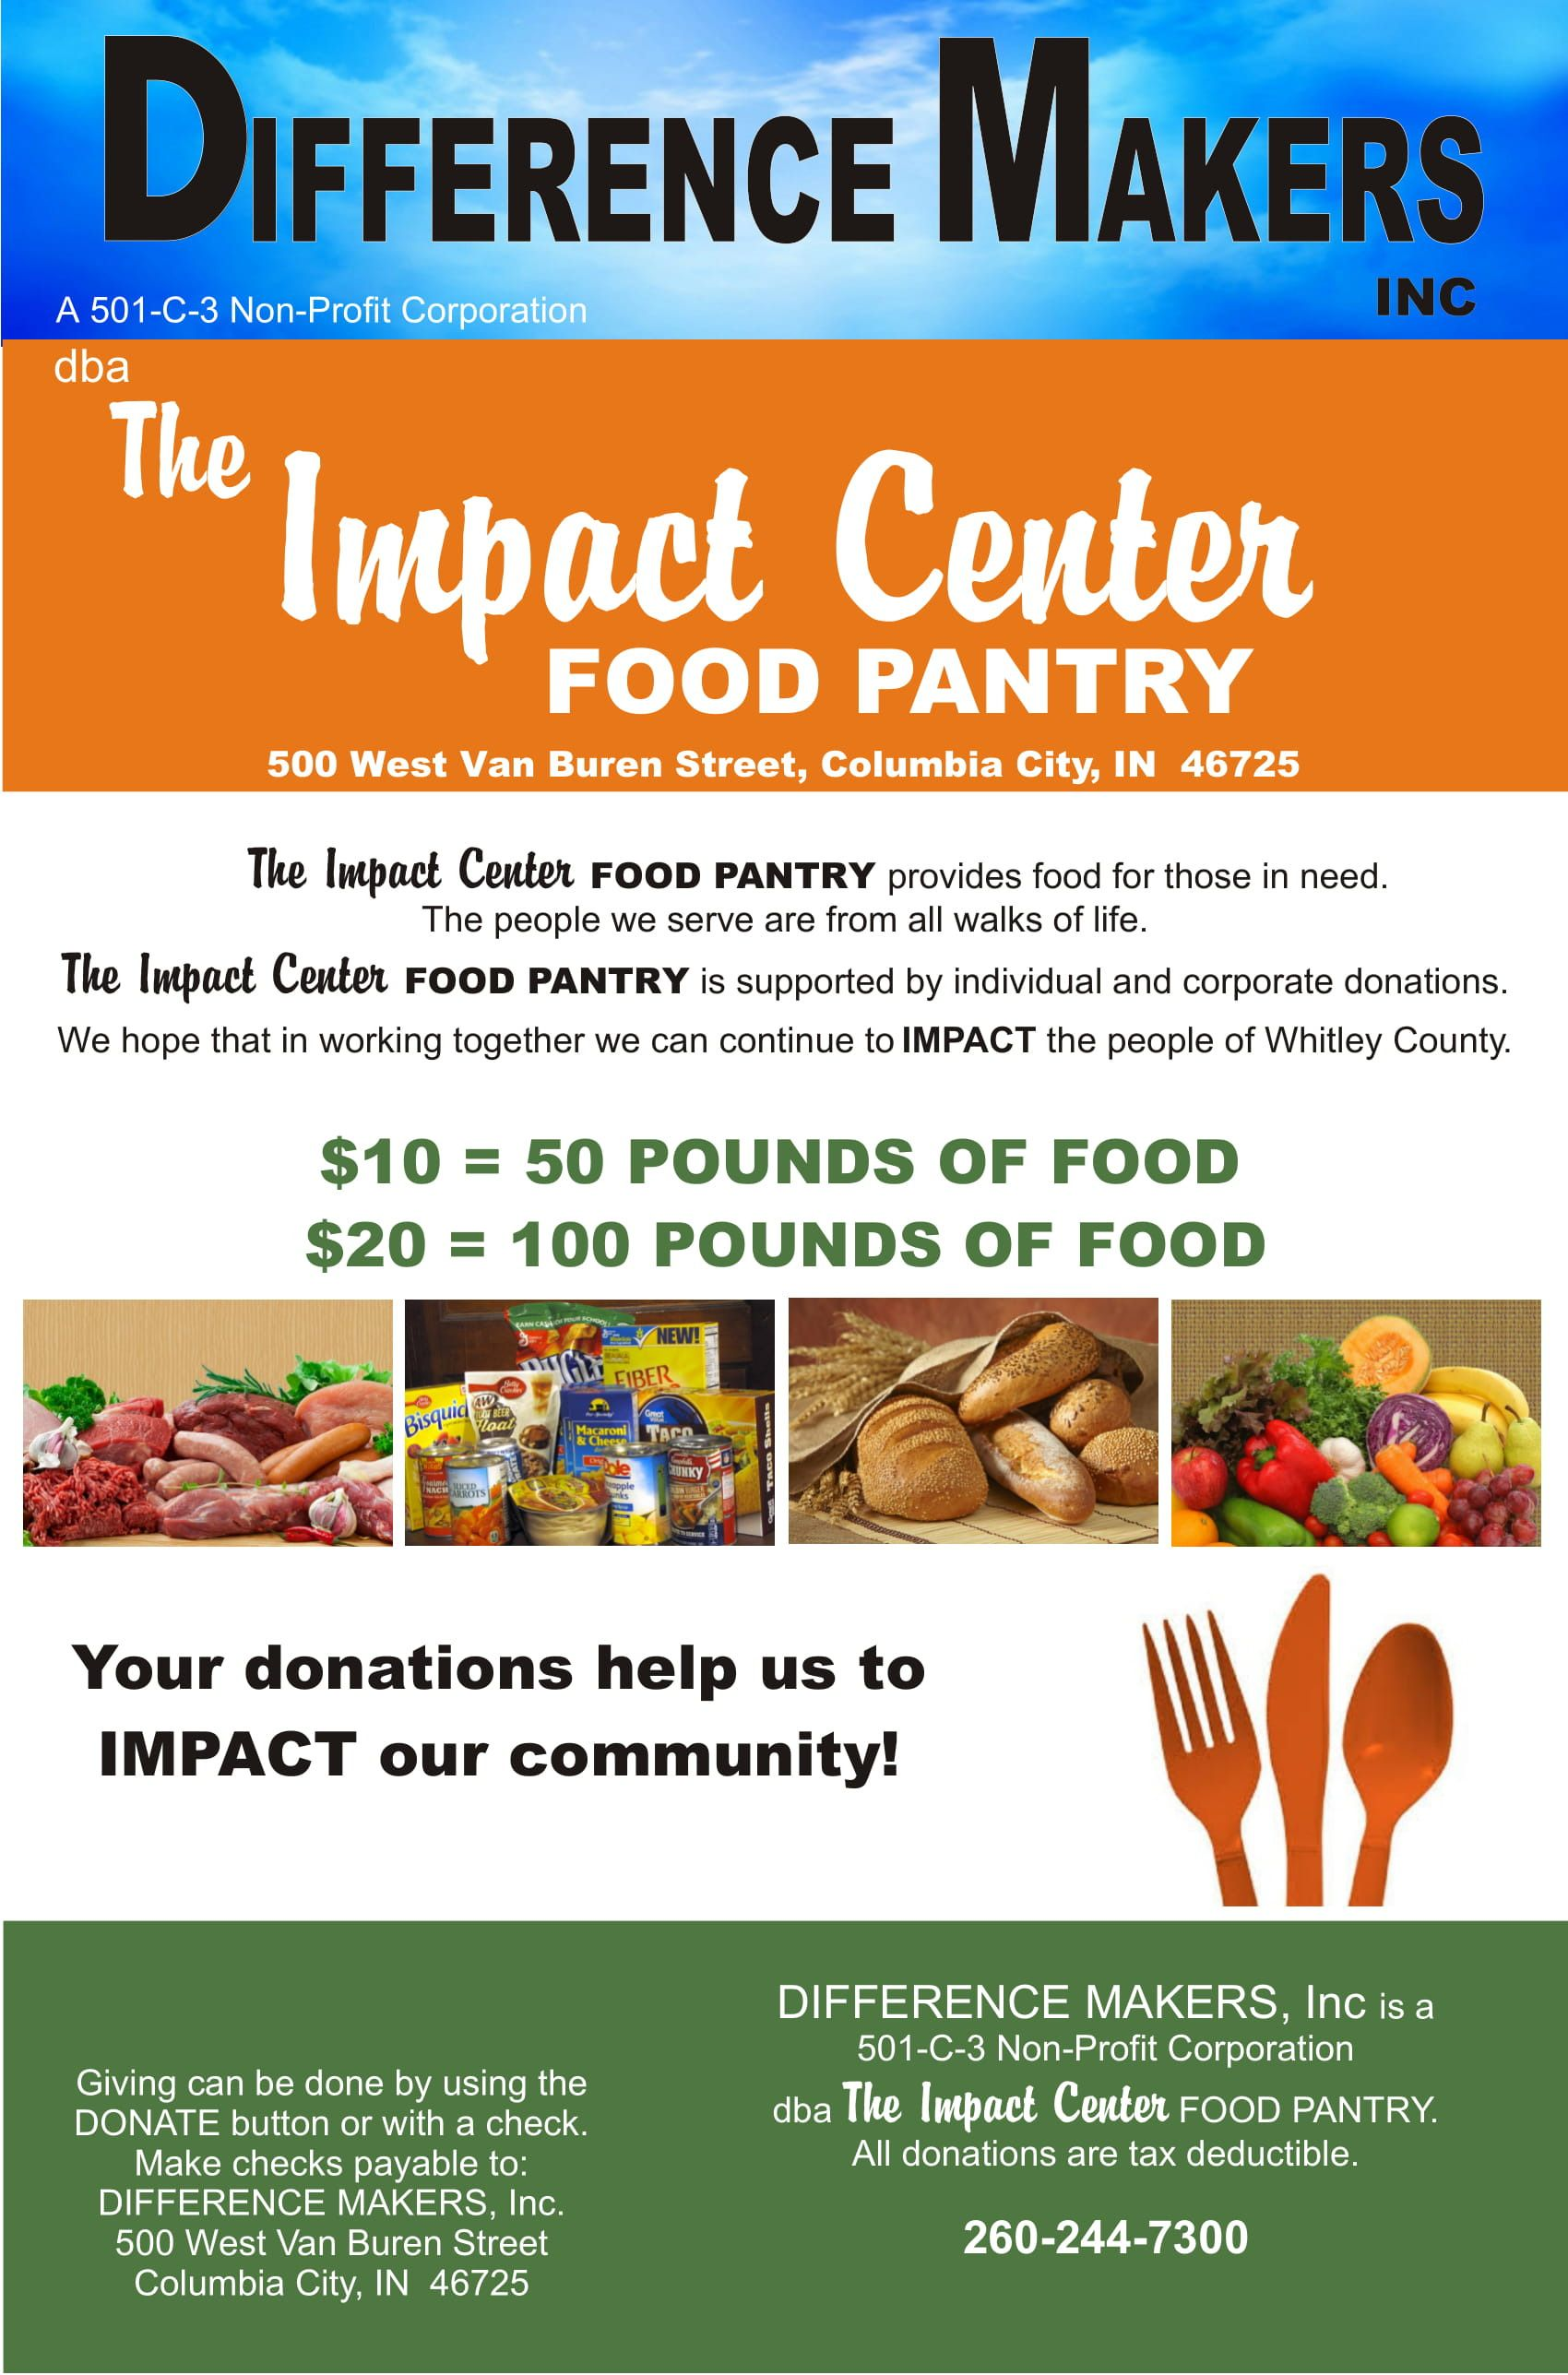 Difference Makers, INC dba The Impact Center Food Pantry